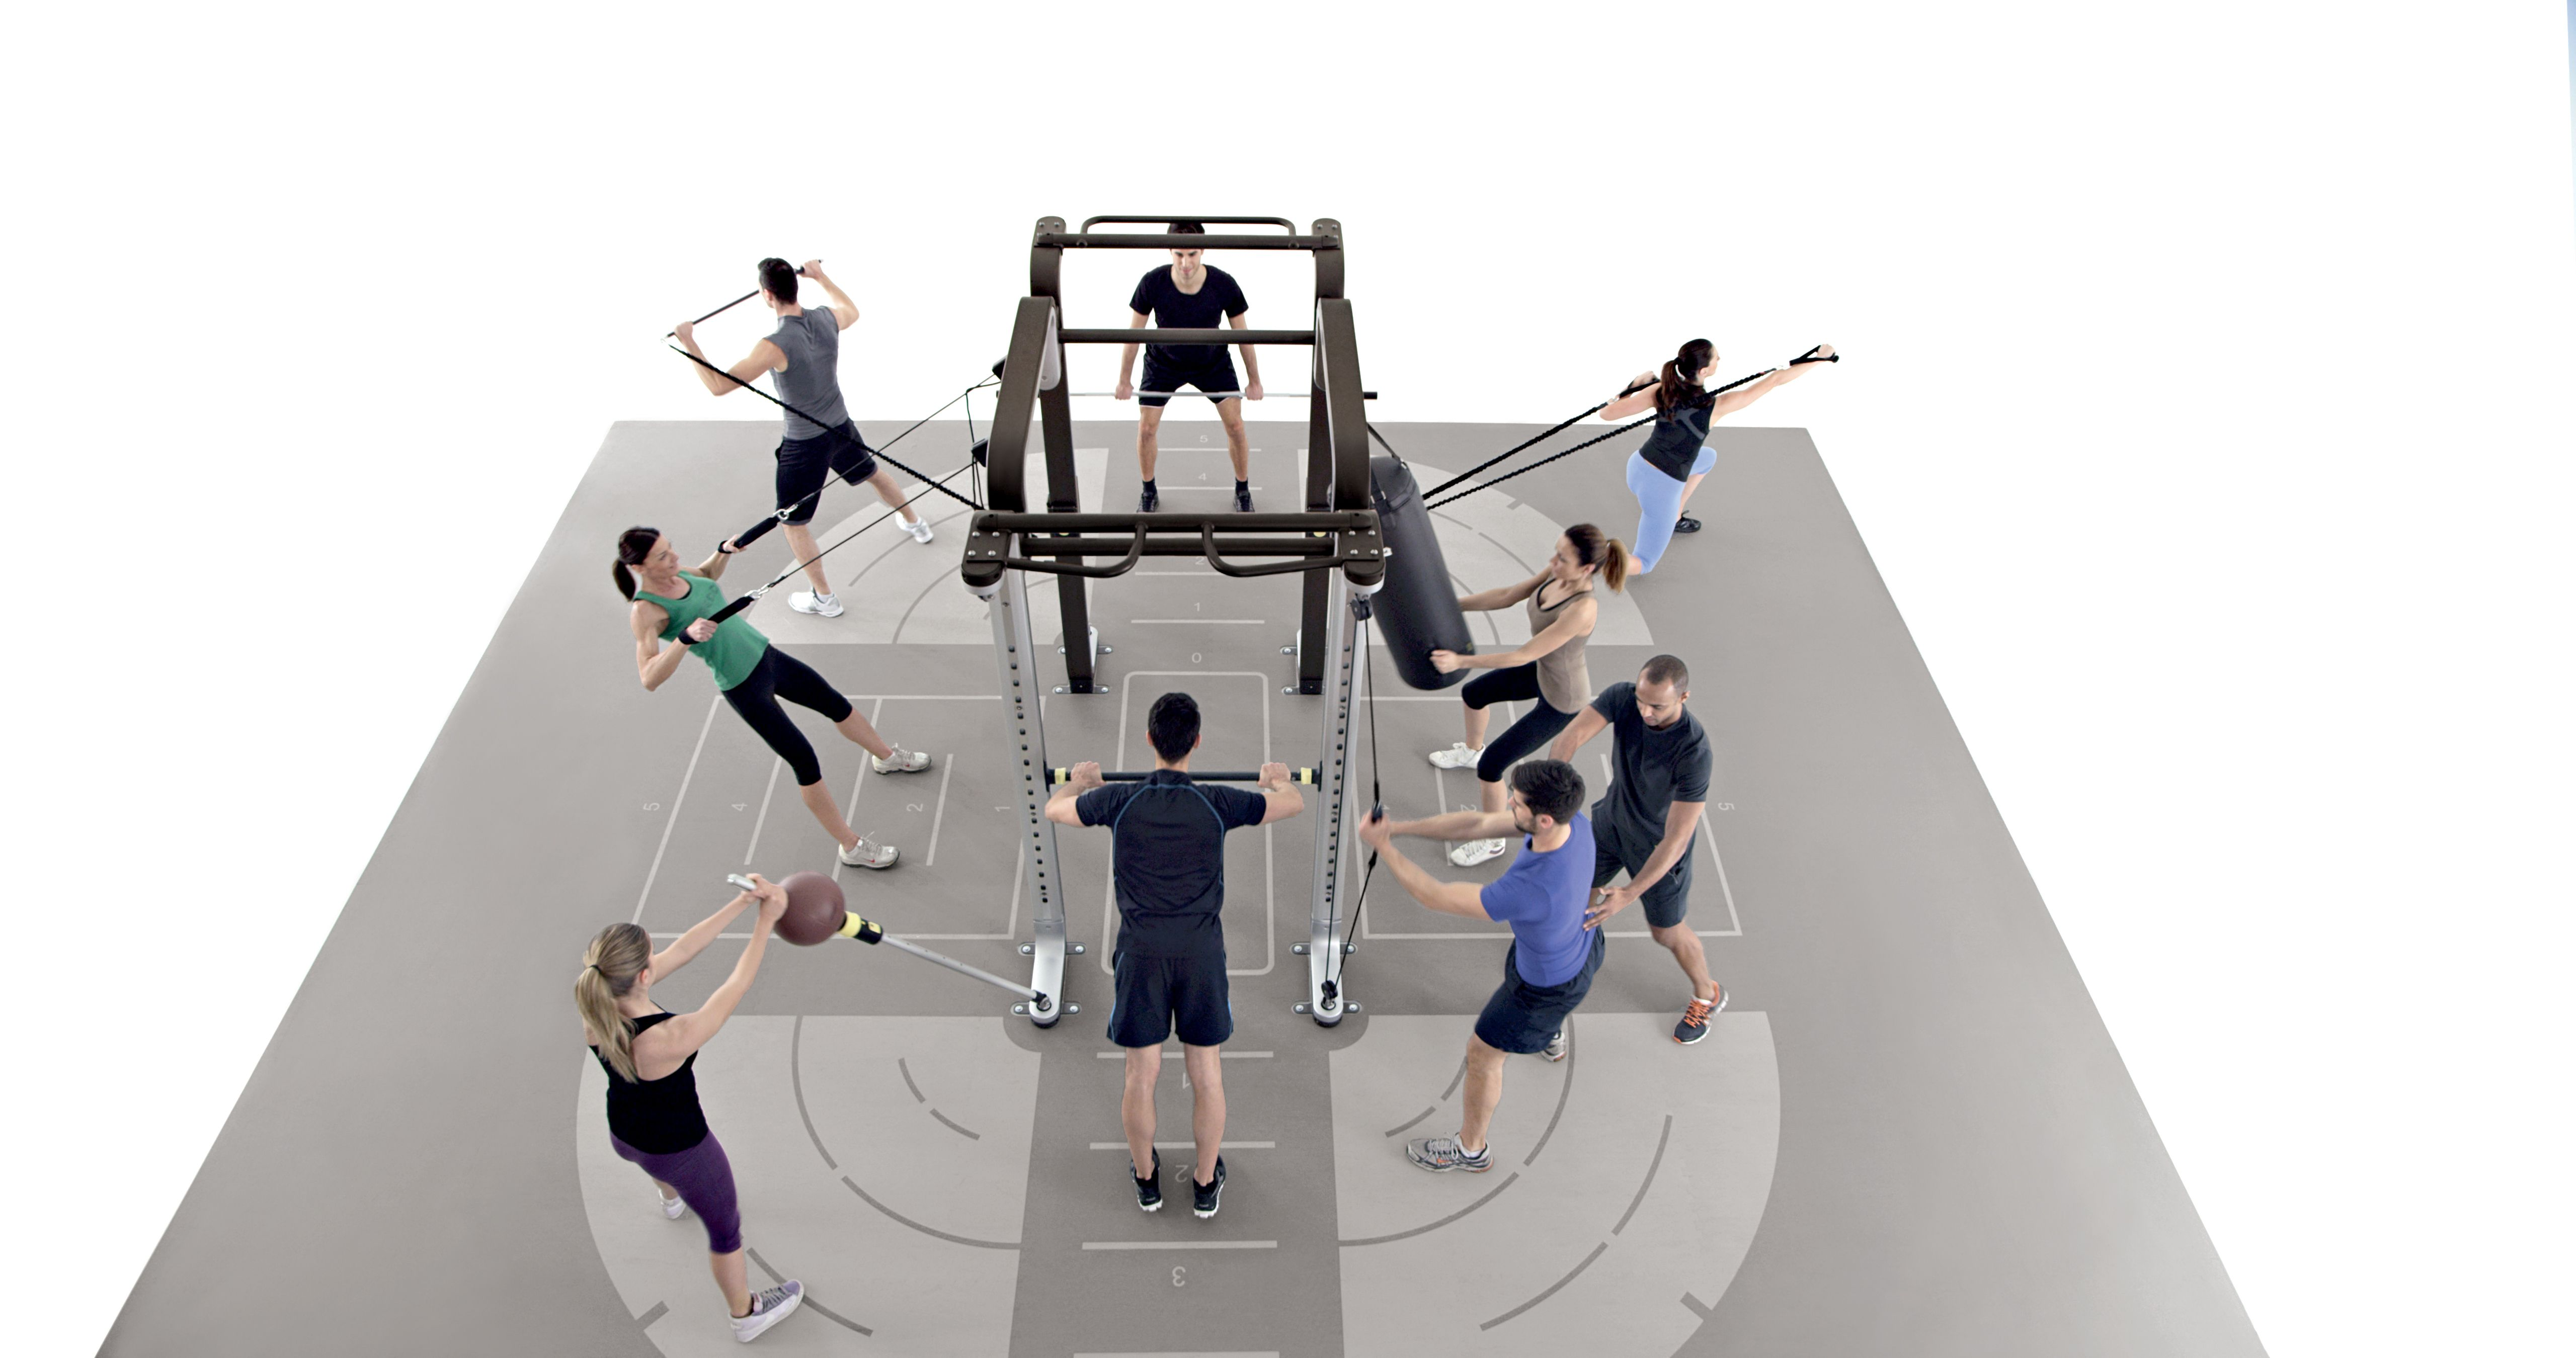 At Fitness Superstore We Specialise In Providing Tailor Made Solutions To Fit Your Needs And Budget Technogym Commercial Fitness Equipment Functional Training